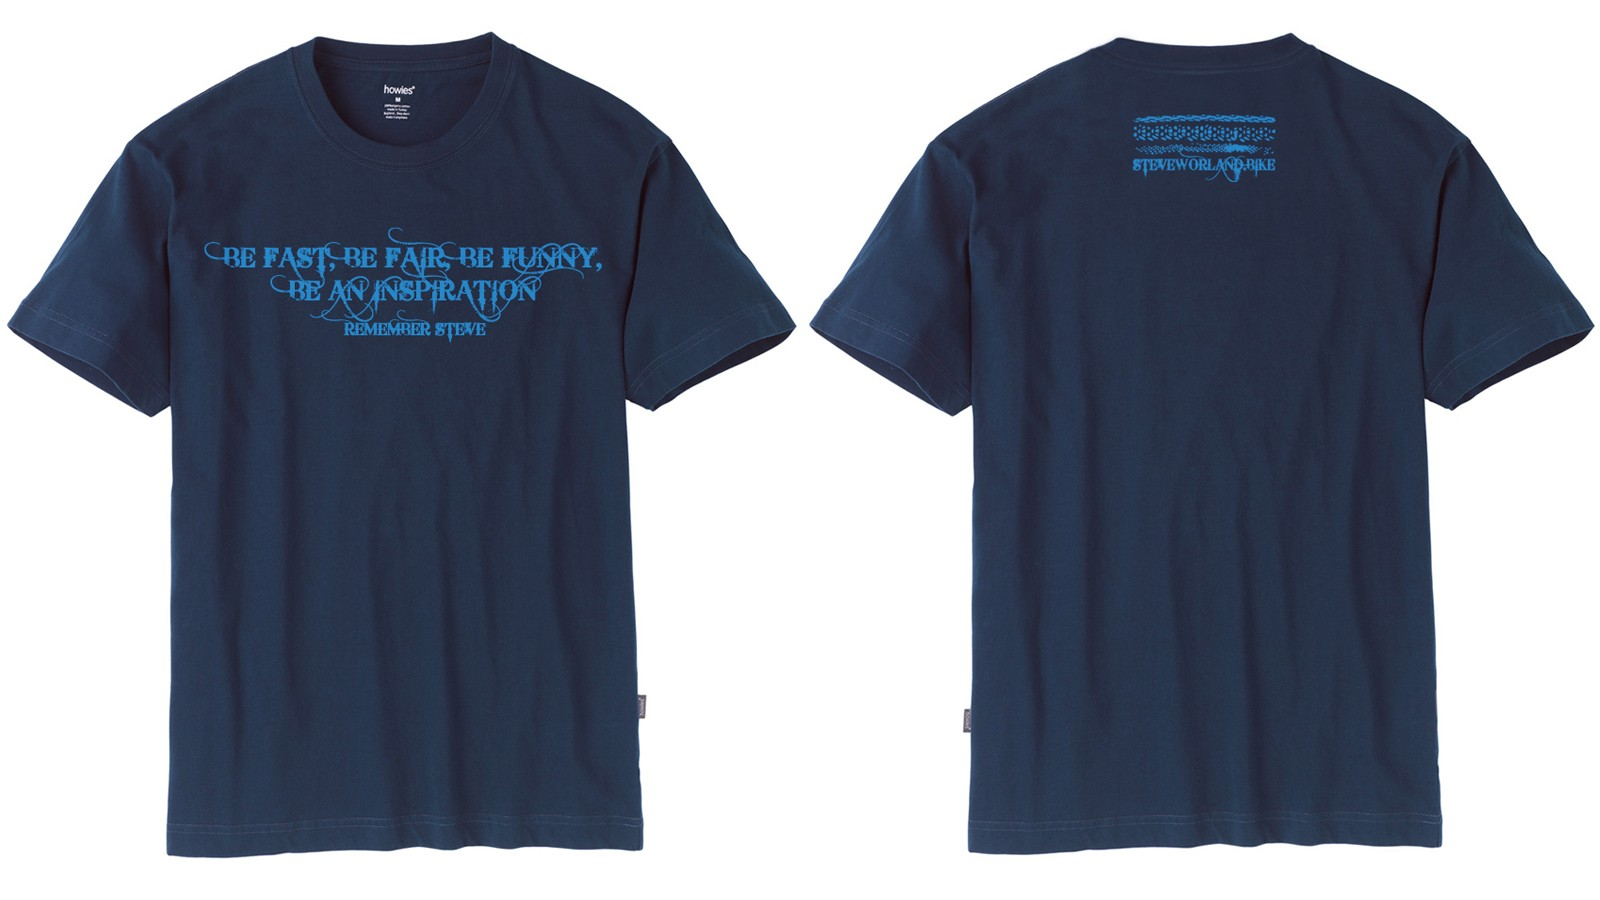 The new Howies T-shirt will help raise money for the Steve Worland Memorial Fund